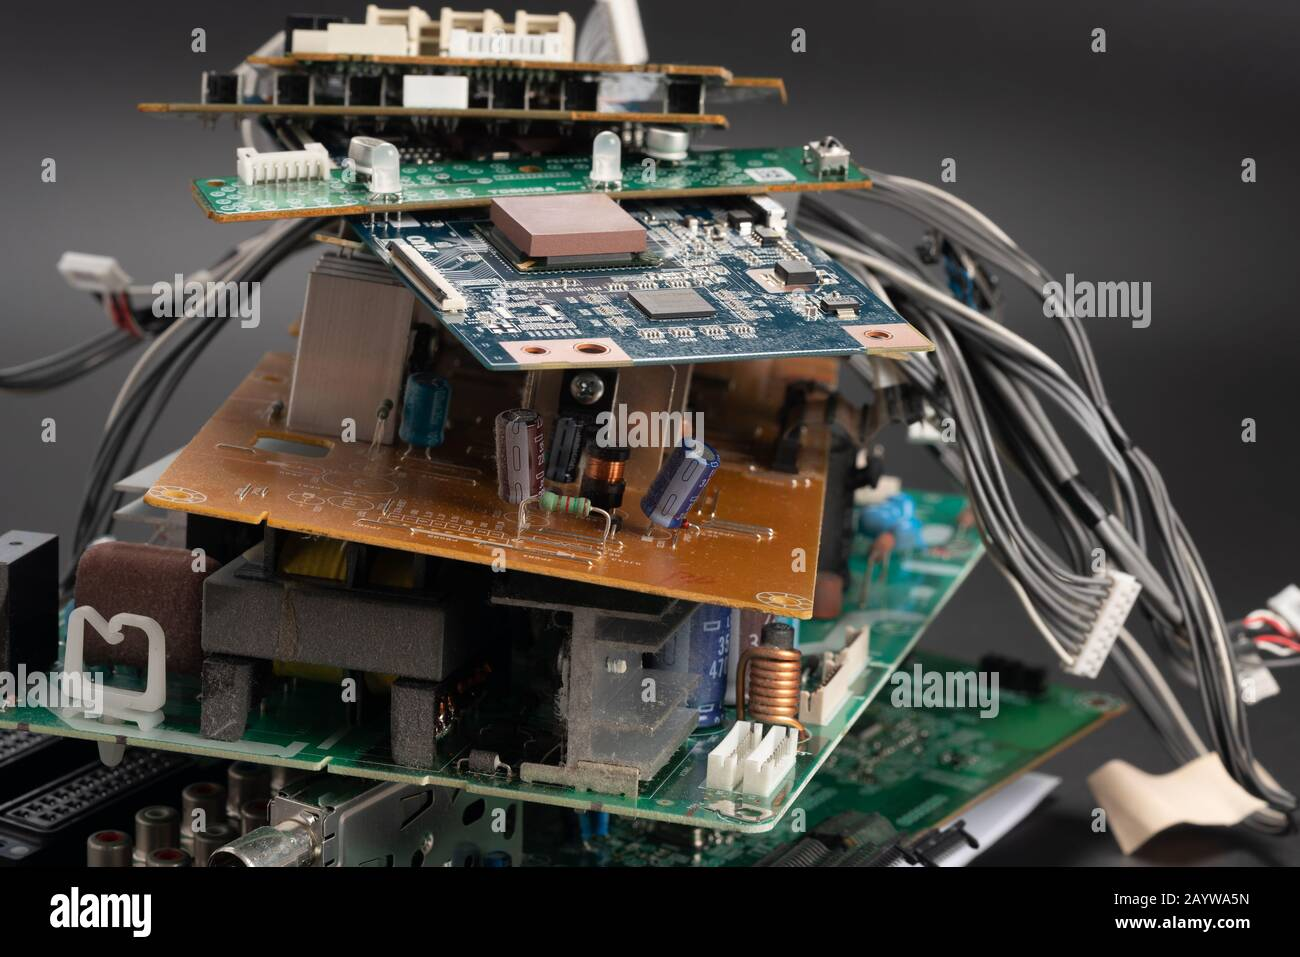 electronic PCB garbage as background from recycle industry and old consumer devices Stock Photo